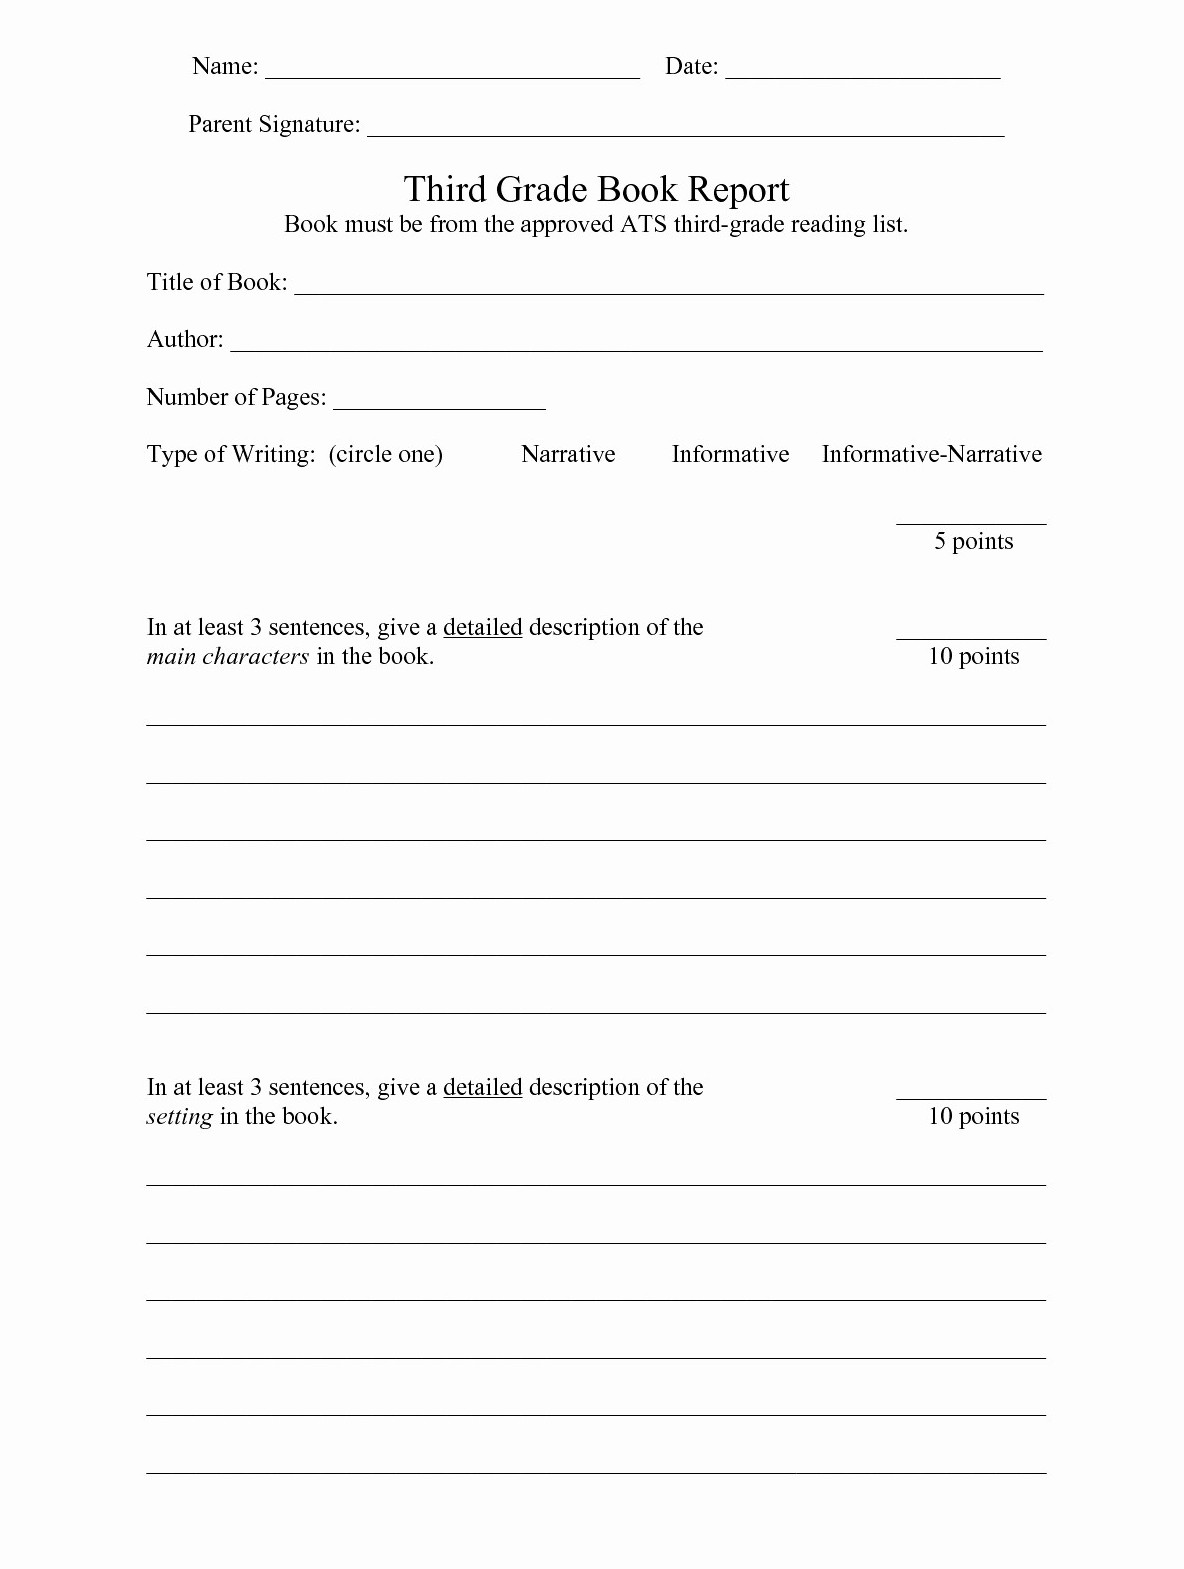 hight resolution of 3rd Grade Book Report Worksheet   Printable Worksheets and Activities for  Teachers